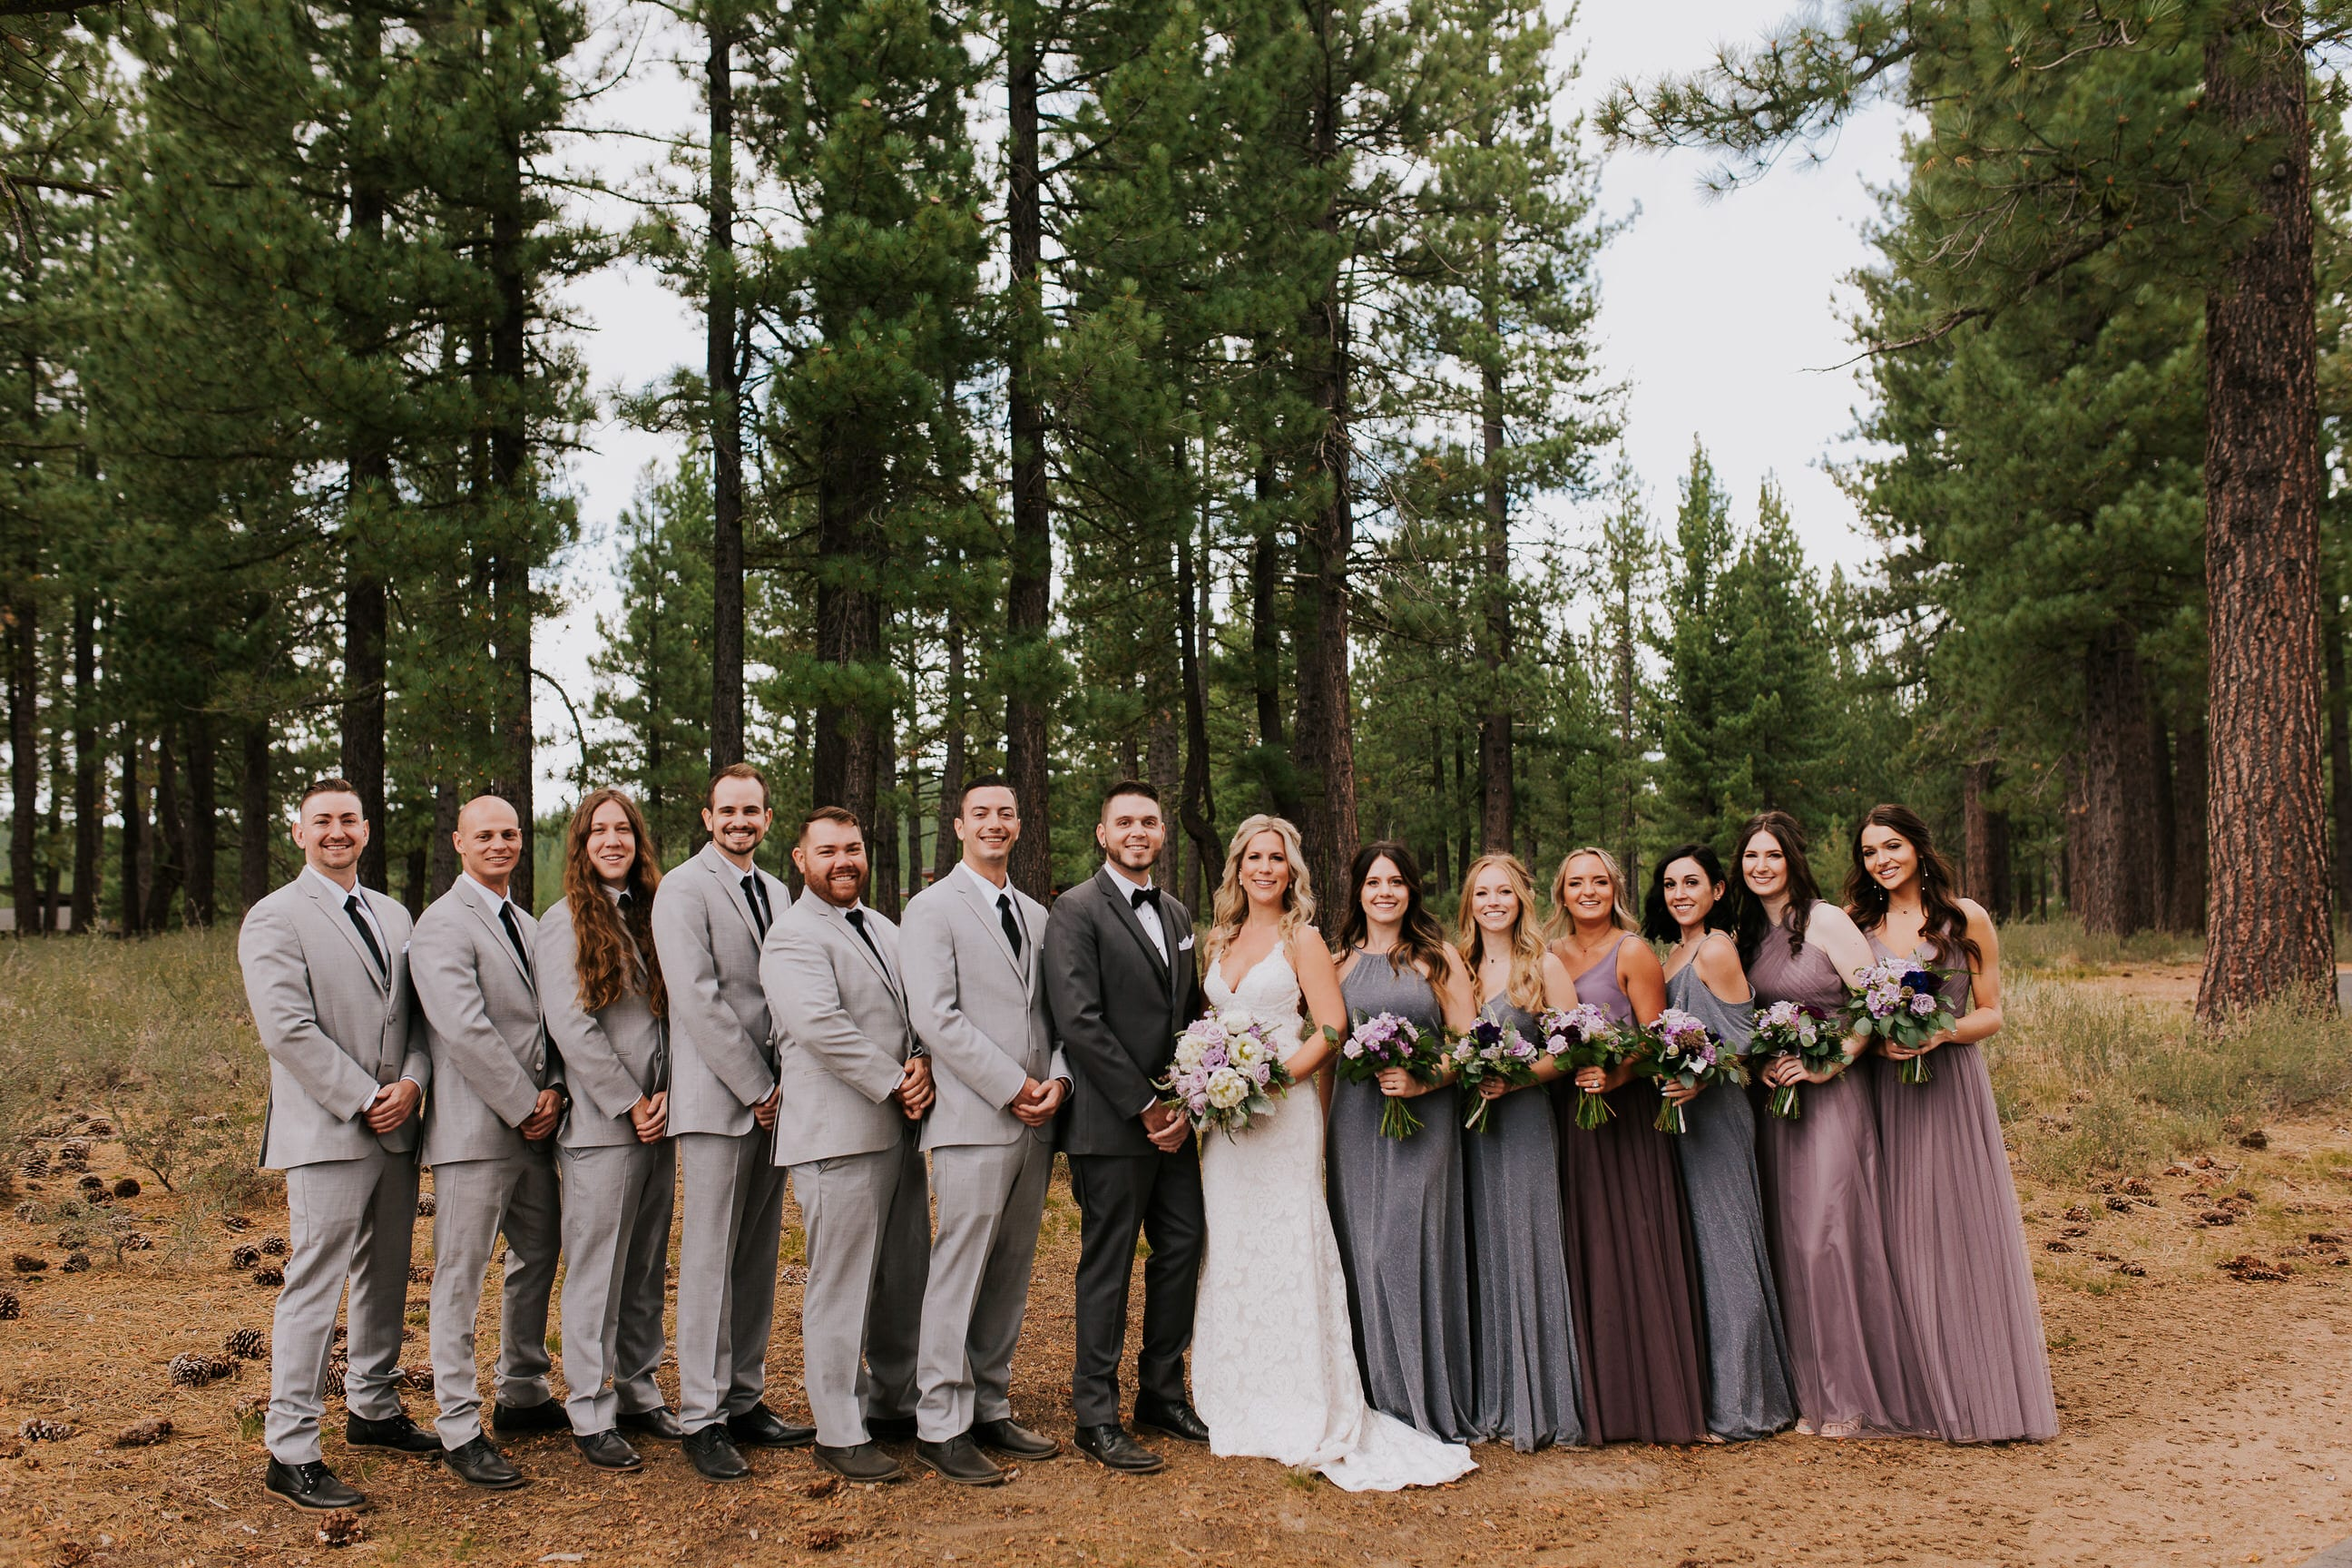 bridal party pictures in outdoor Colorado wedding